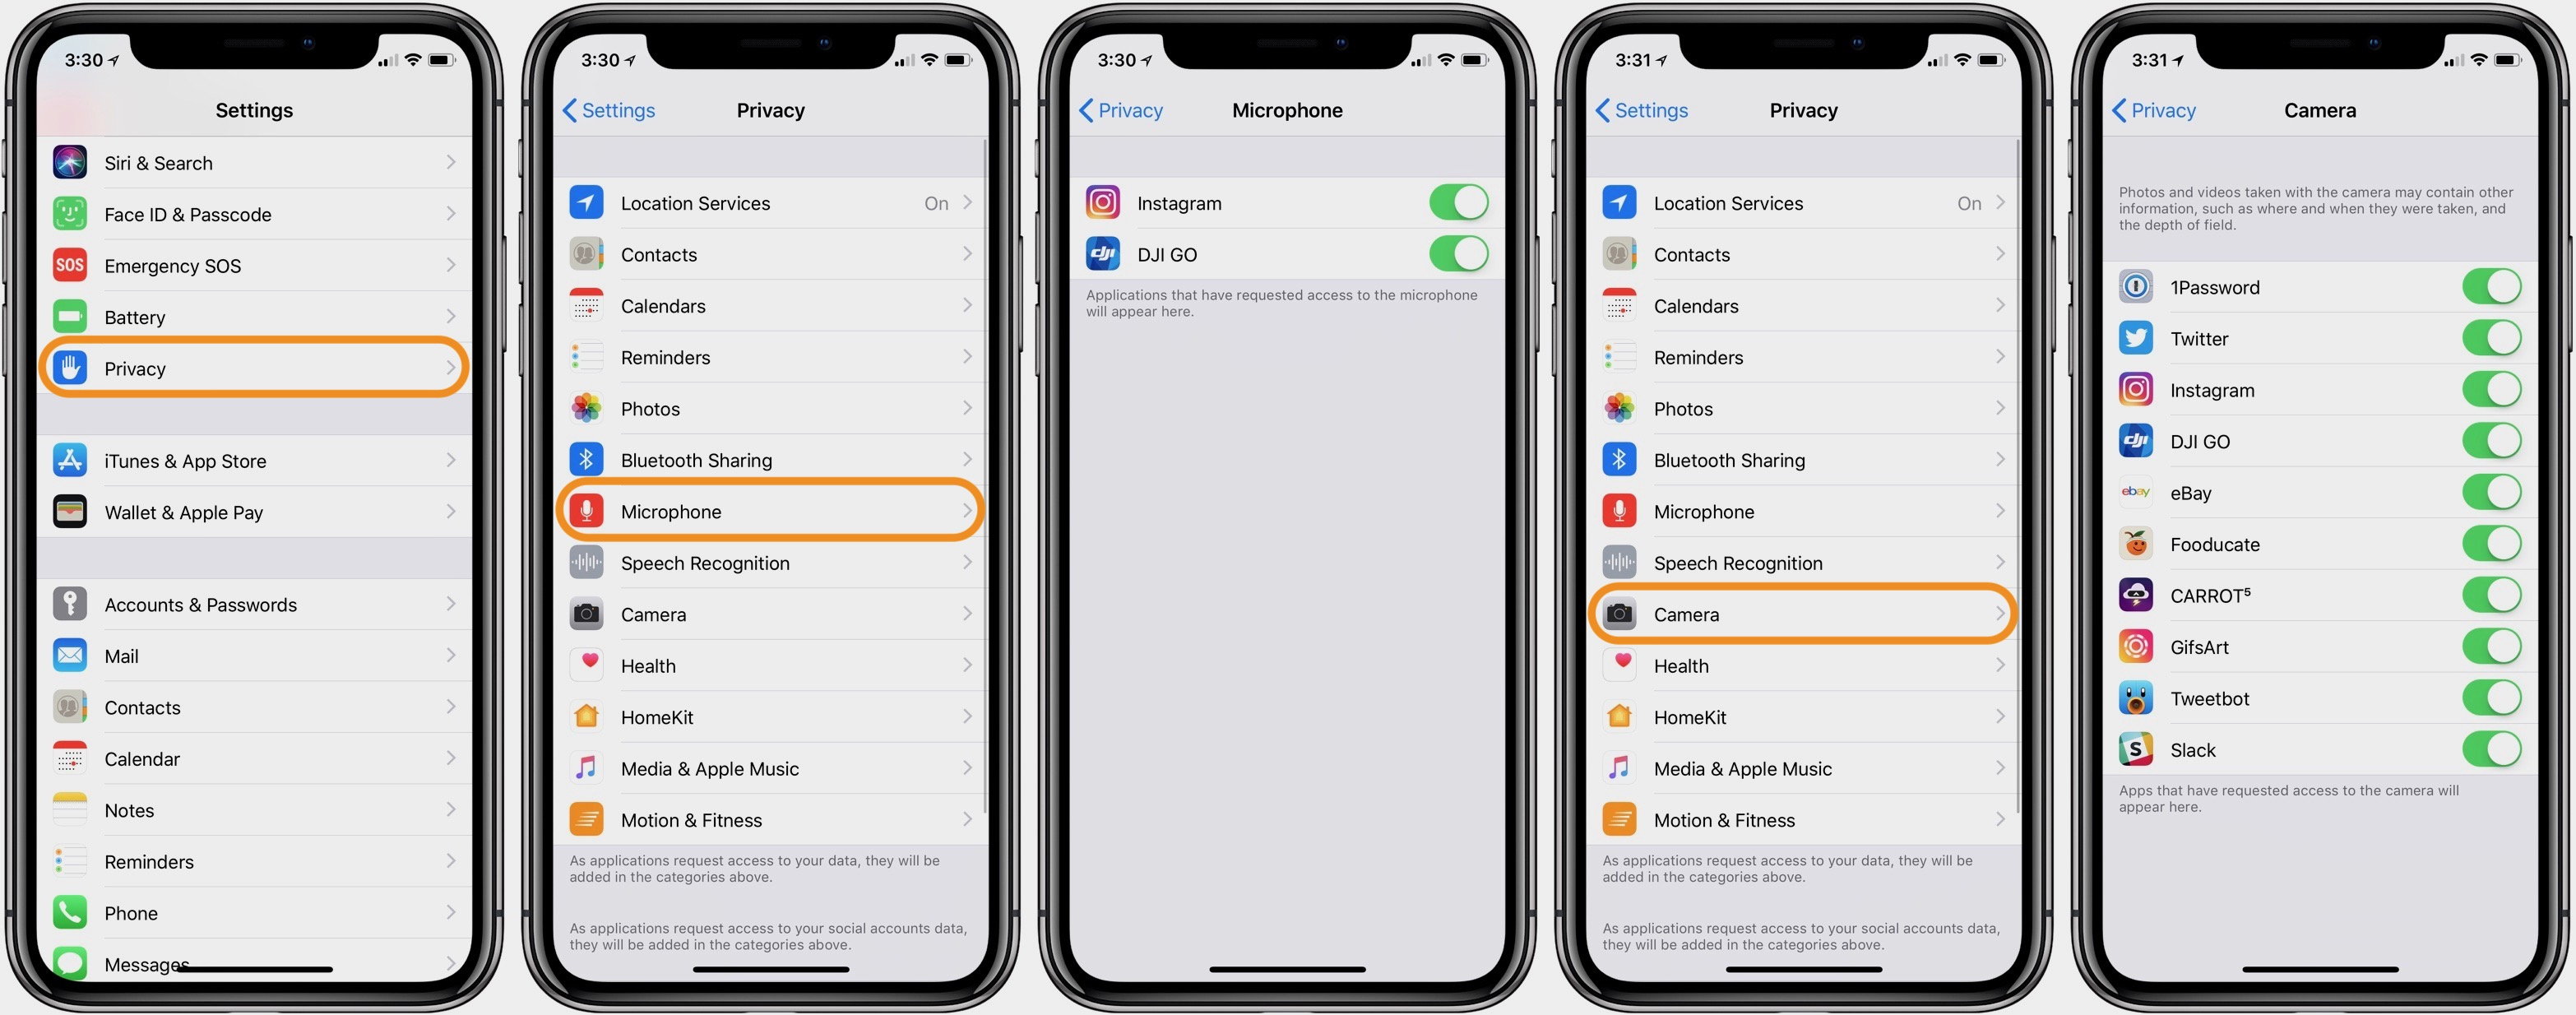 How to check which apps have access to your iPhone's camera and